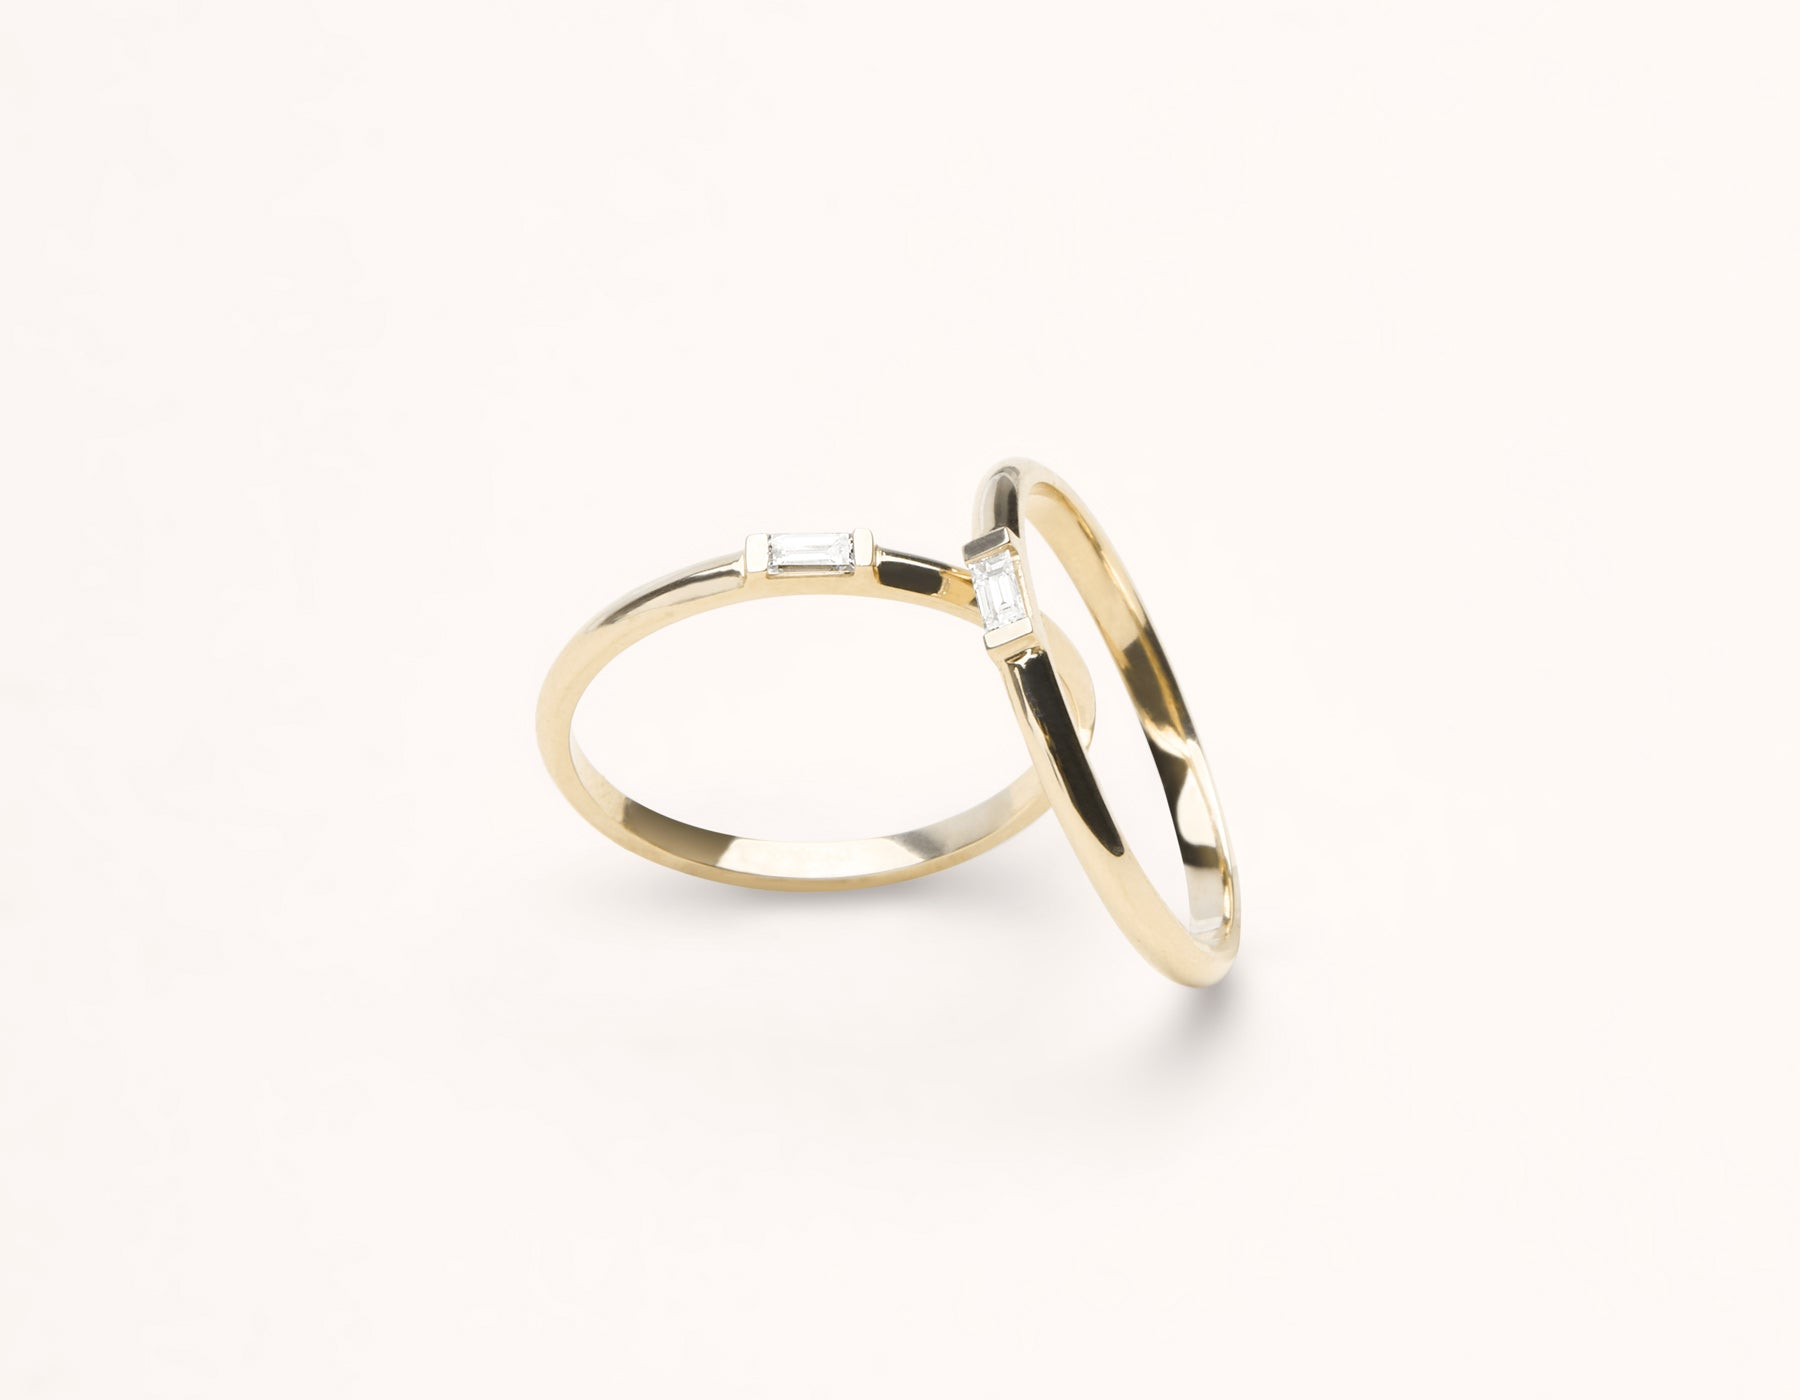 Modern Minimalist 14k solid gold Baguette Diamond Ring pair band by Vrai and Oro, 14K Yellow Gold